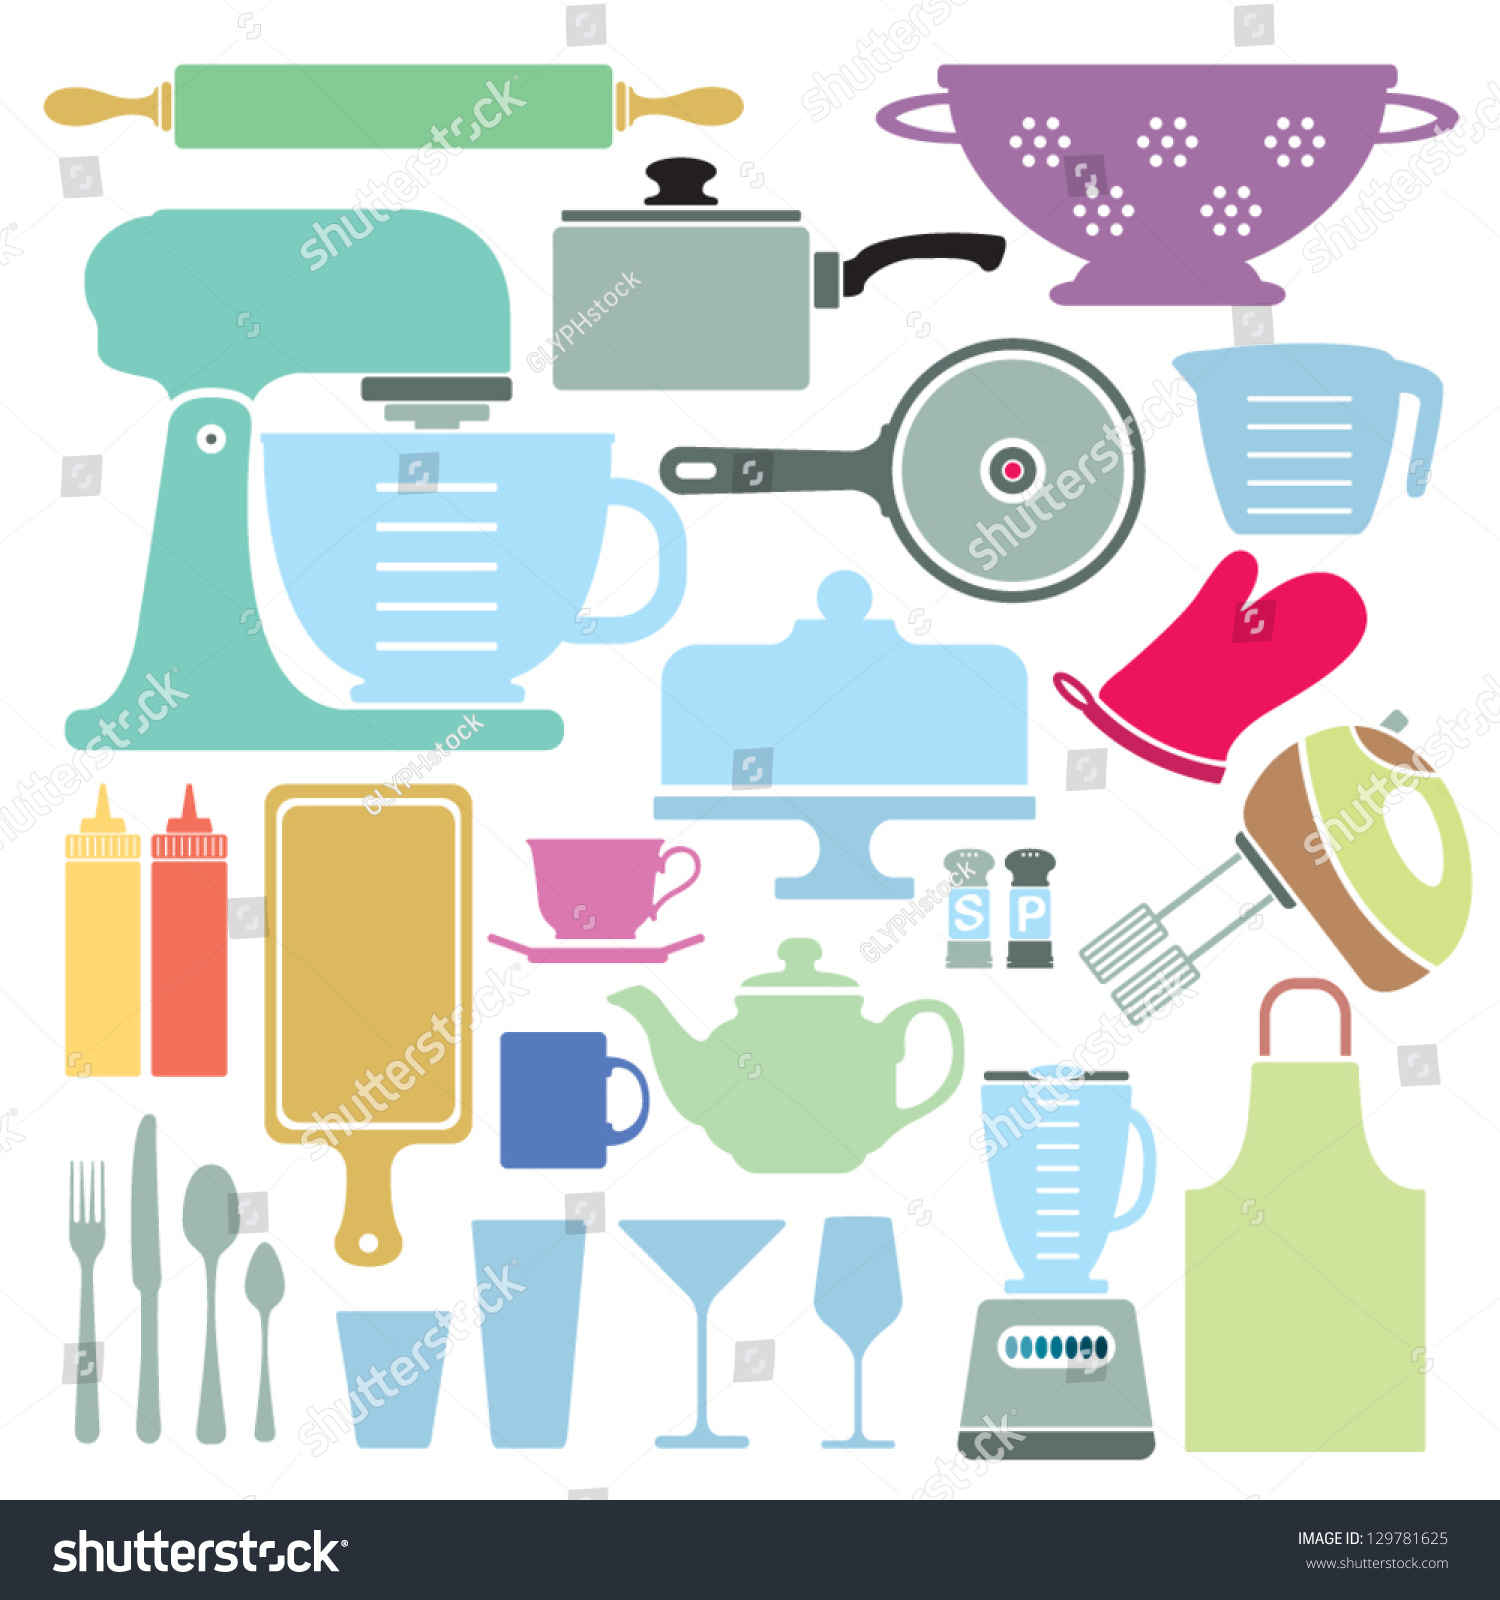 Uncategorized Kitchen Utensils And Appliances stylized vector collection kitchen utensils appliances stock a of and appliances